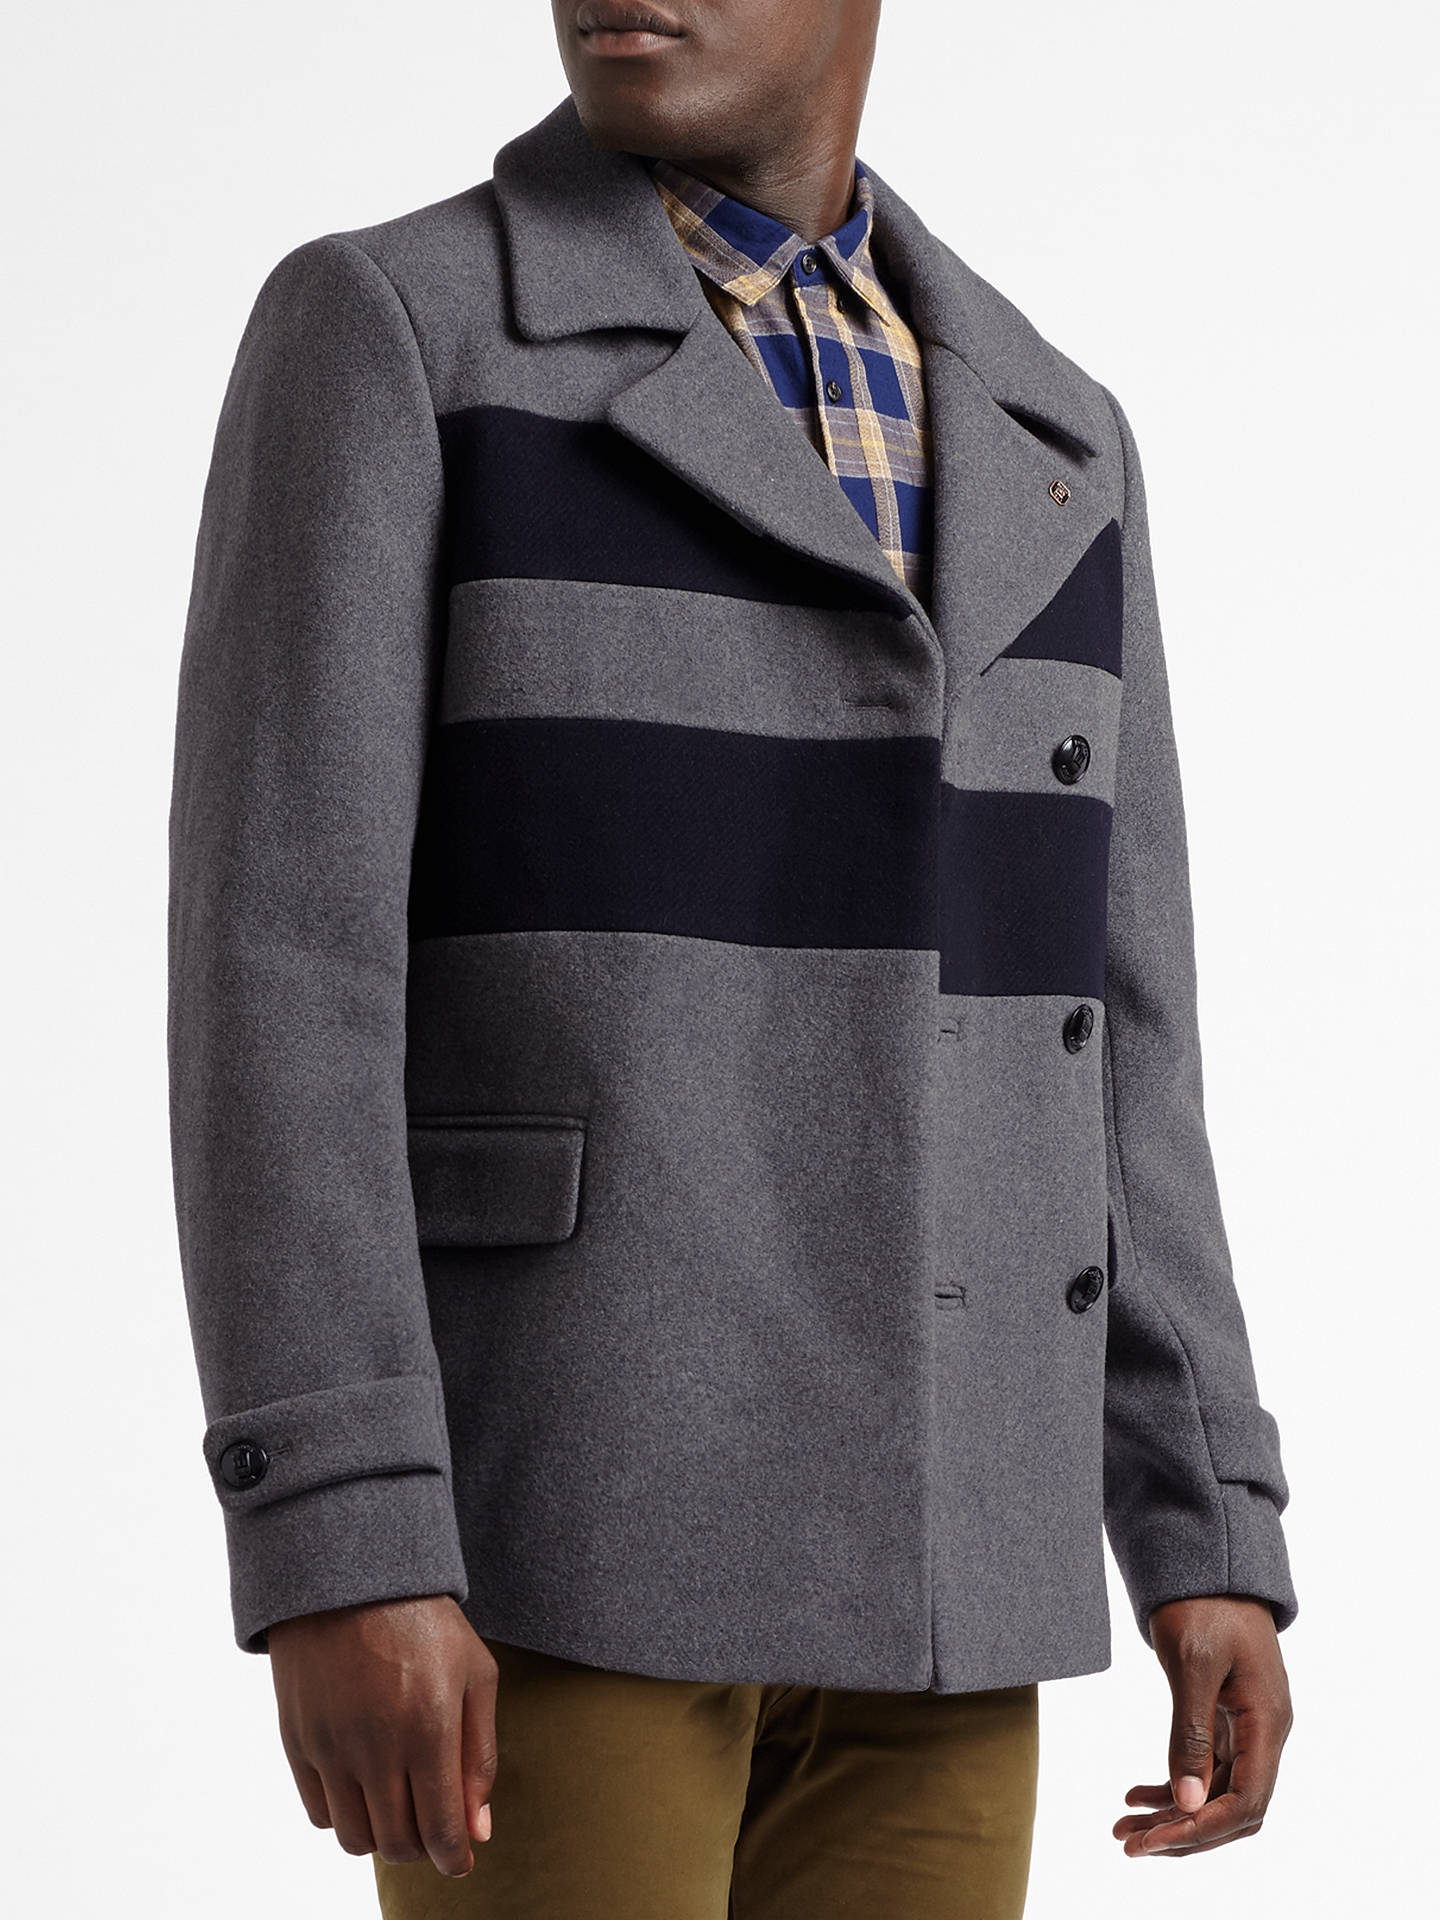 6a36590d Buy Scotch & Soda Double Breasted Caban Peacoat, Graphite Melange, M Online  at johnlewis ...